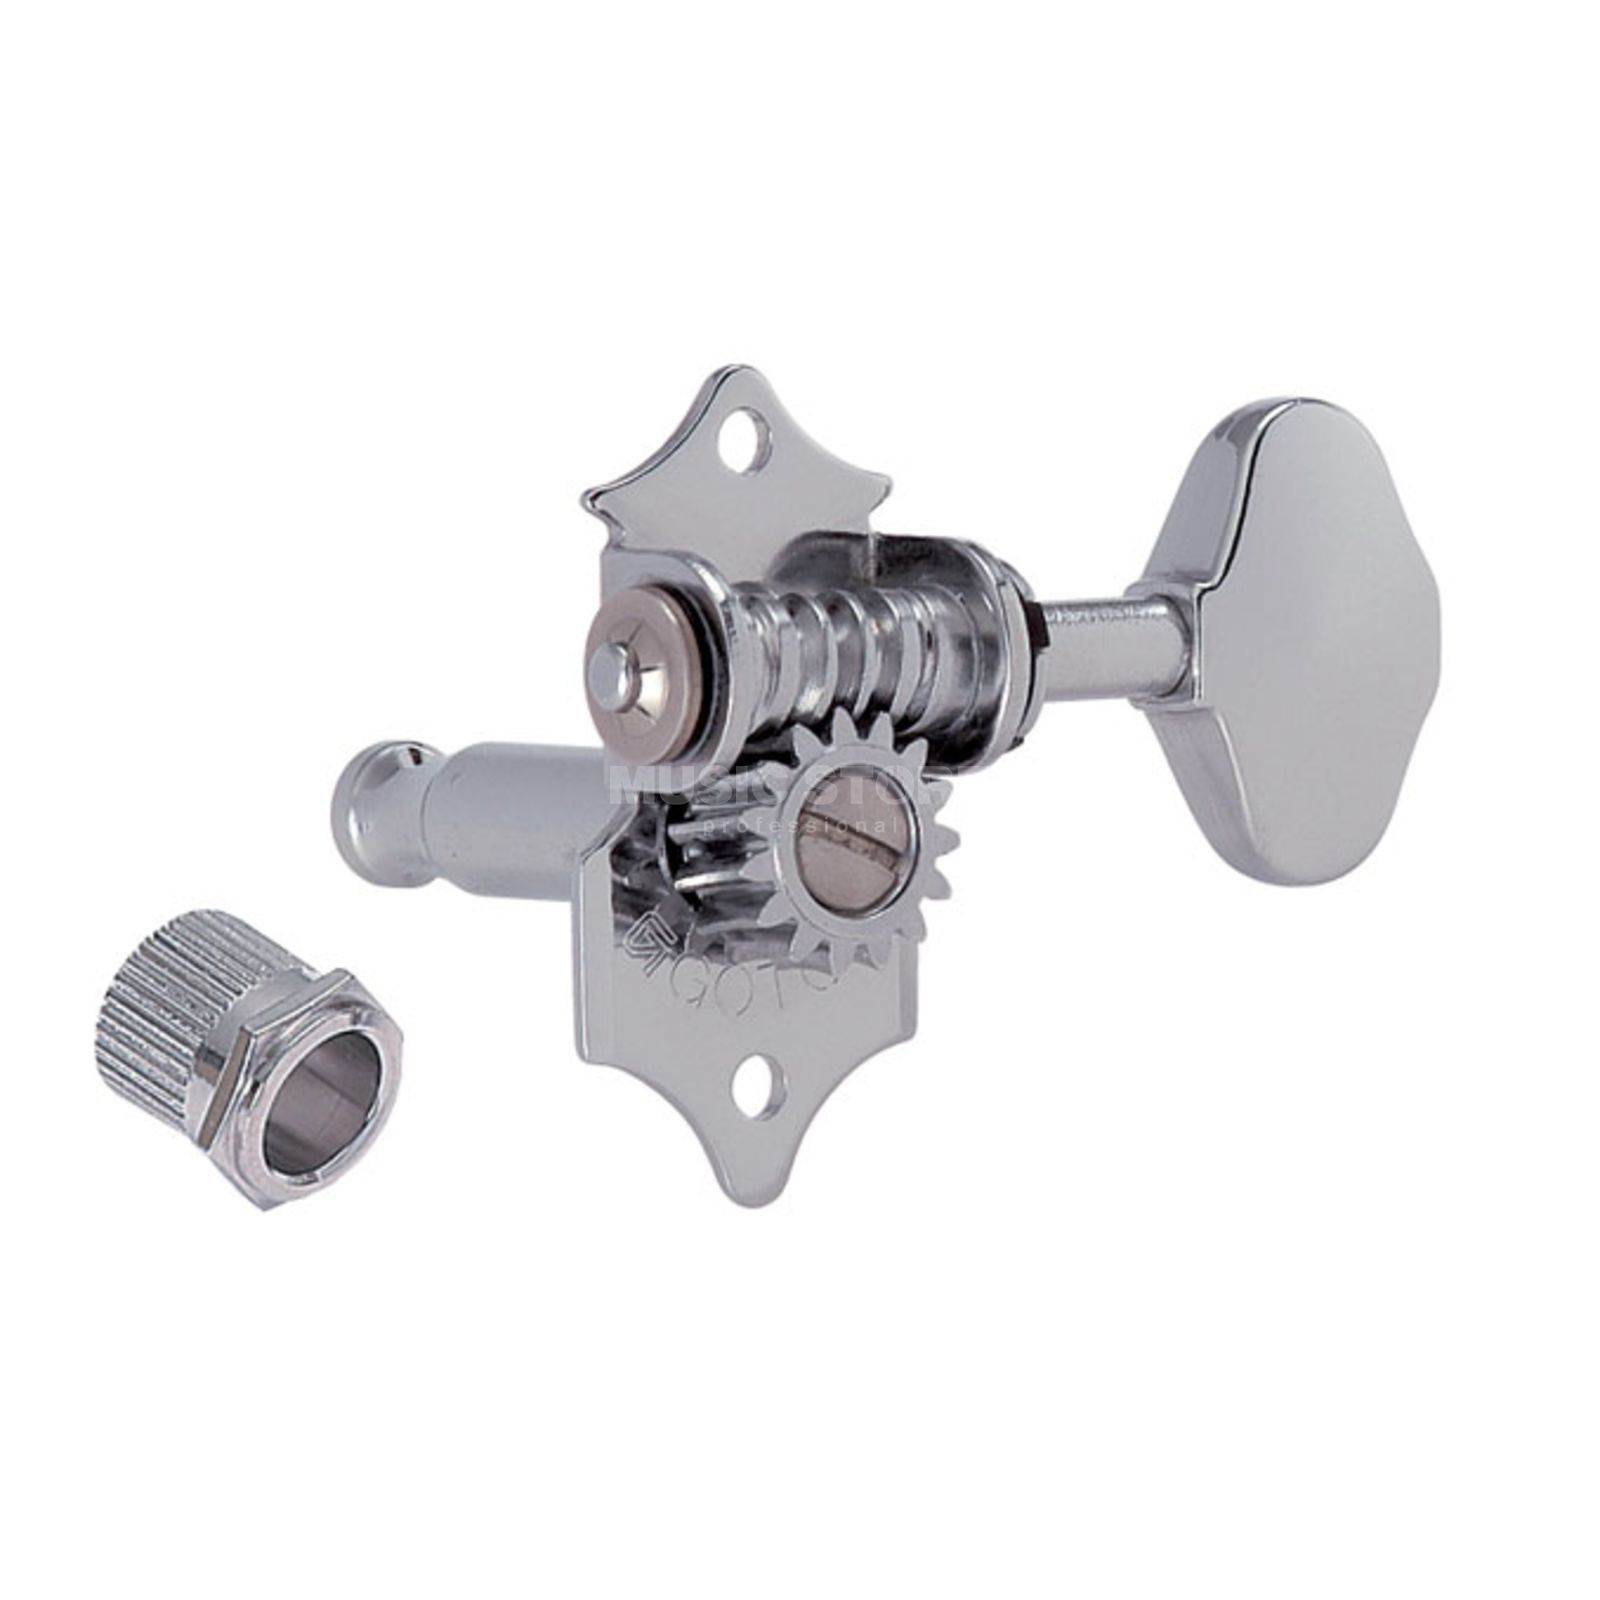 Gotoh SE-700 Mechanik N 3L 3R 06M Button nickel Produktbillede